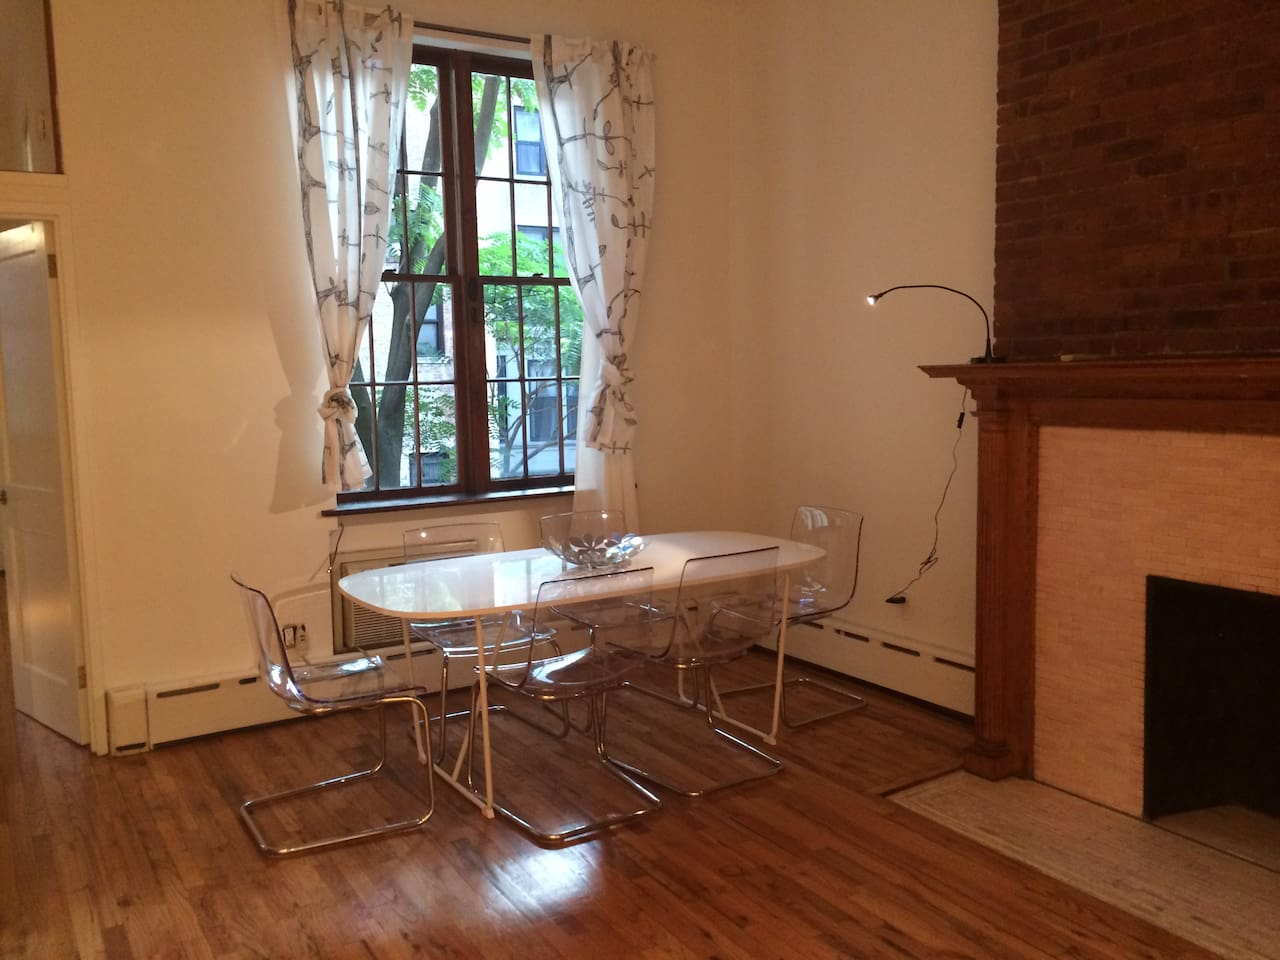 Dining table seats 6, decorative fireplace in living, mounted TV above